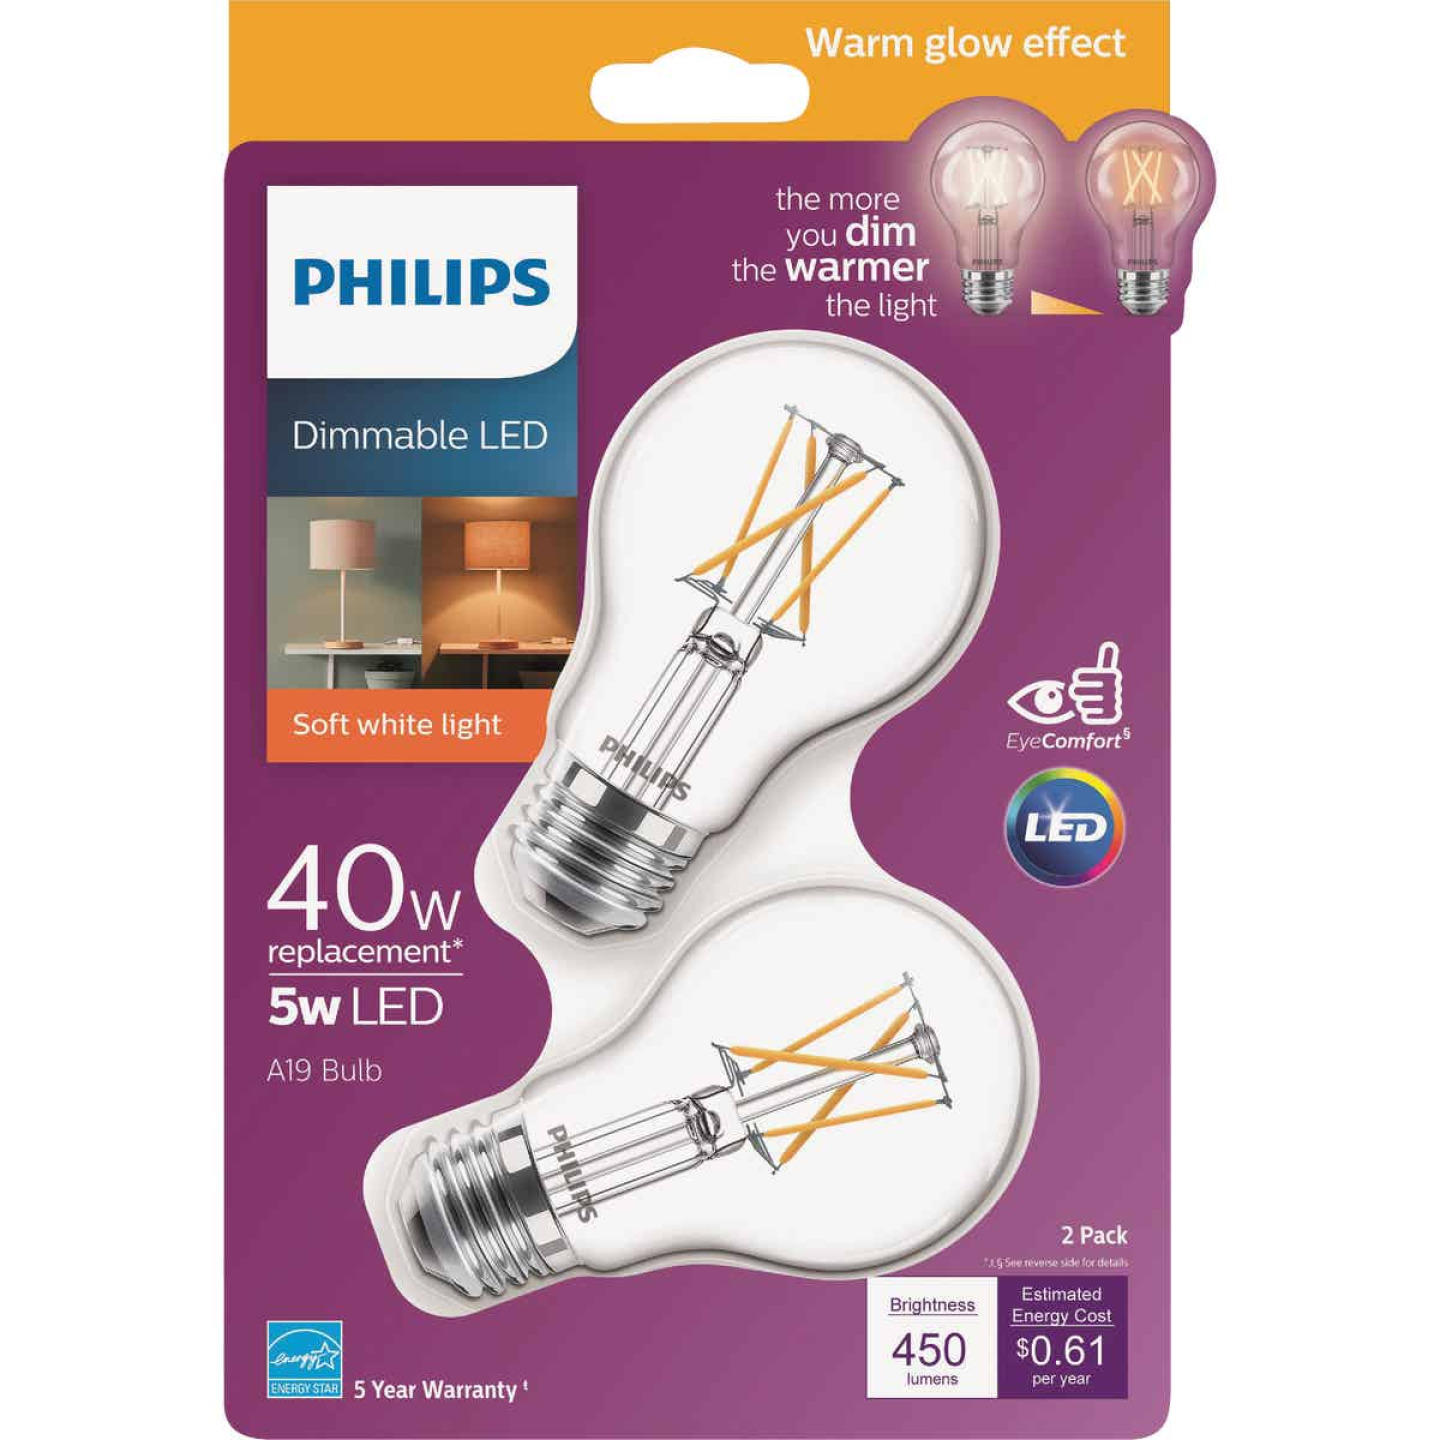 Philips Warm Glow 40W Equivalent Soft White A19 Medium Dimmable LED Light Bulb (2-Pack) Image 1